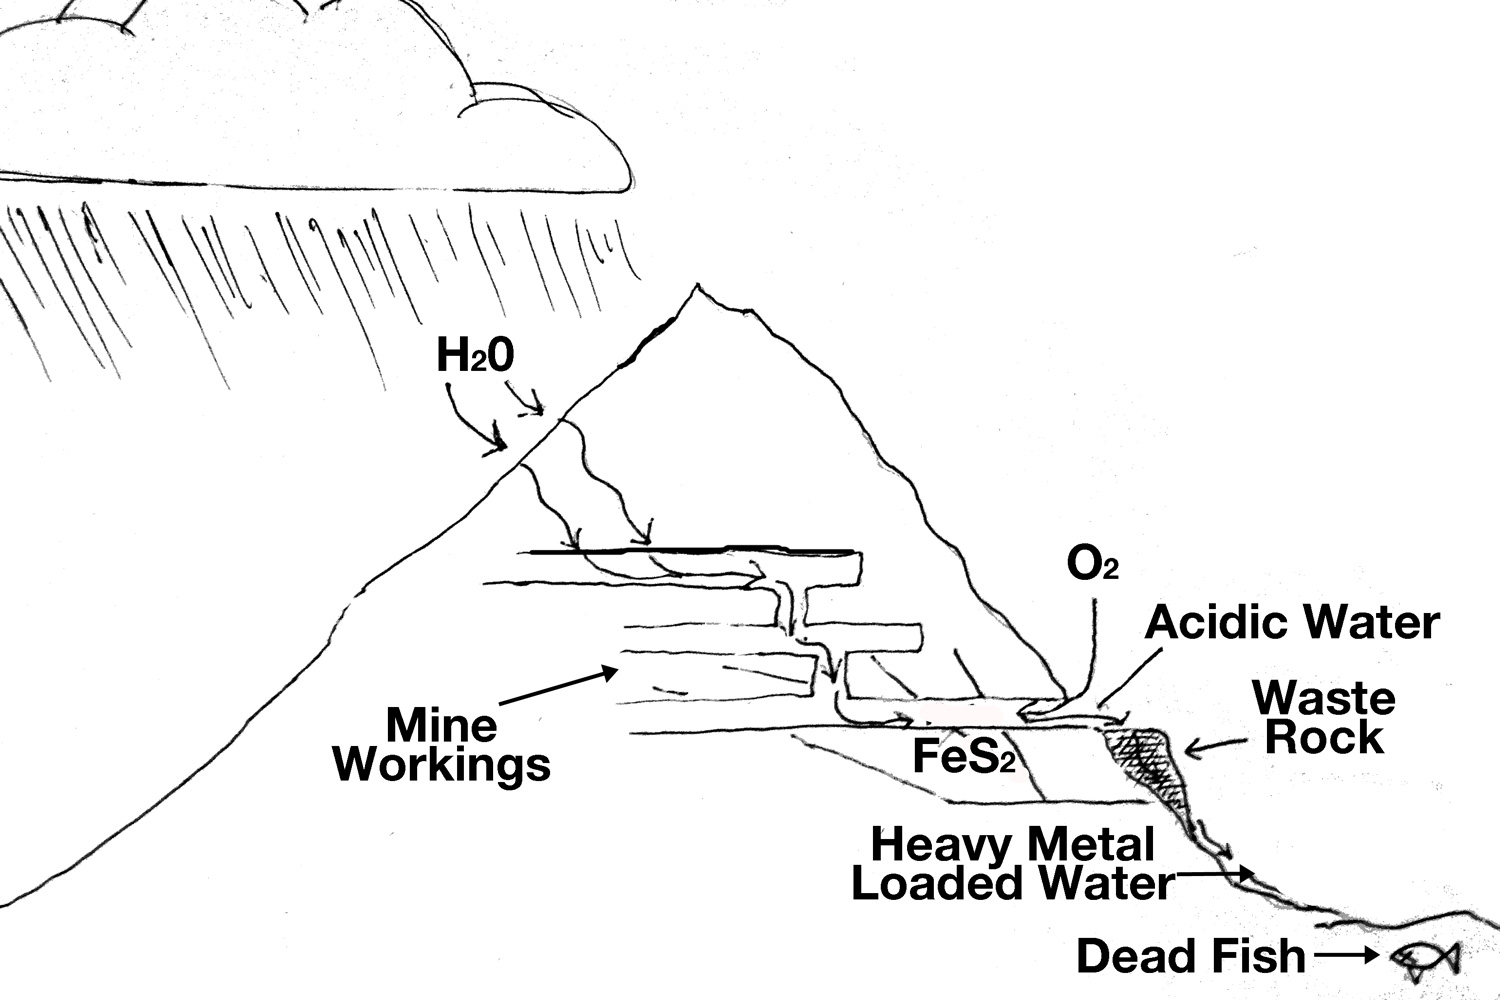 hight resolution of mine tunnels intercept groundwater and expose it to pyrite and oxygen setting up a chemical reaction that produces acid mine drainage